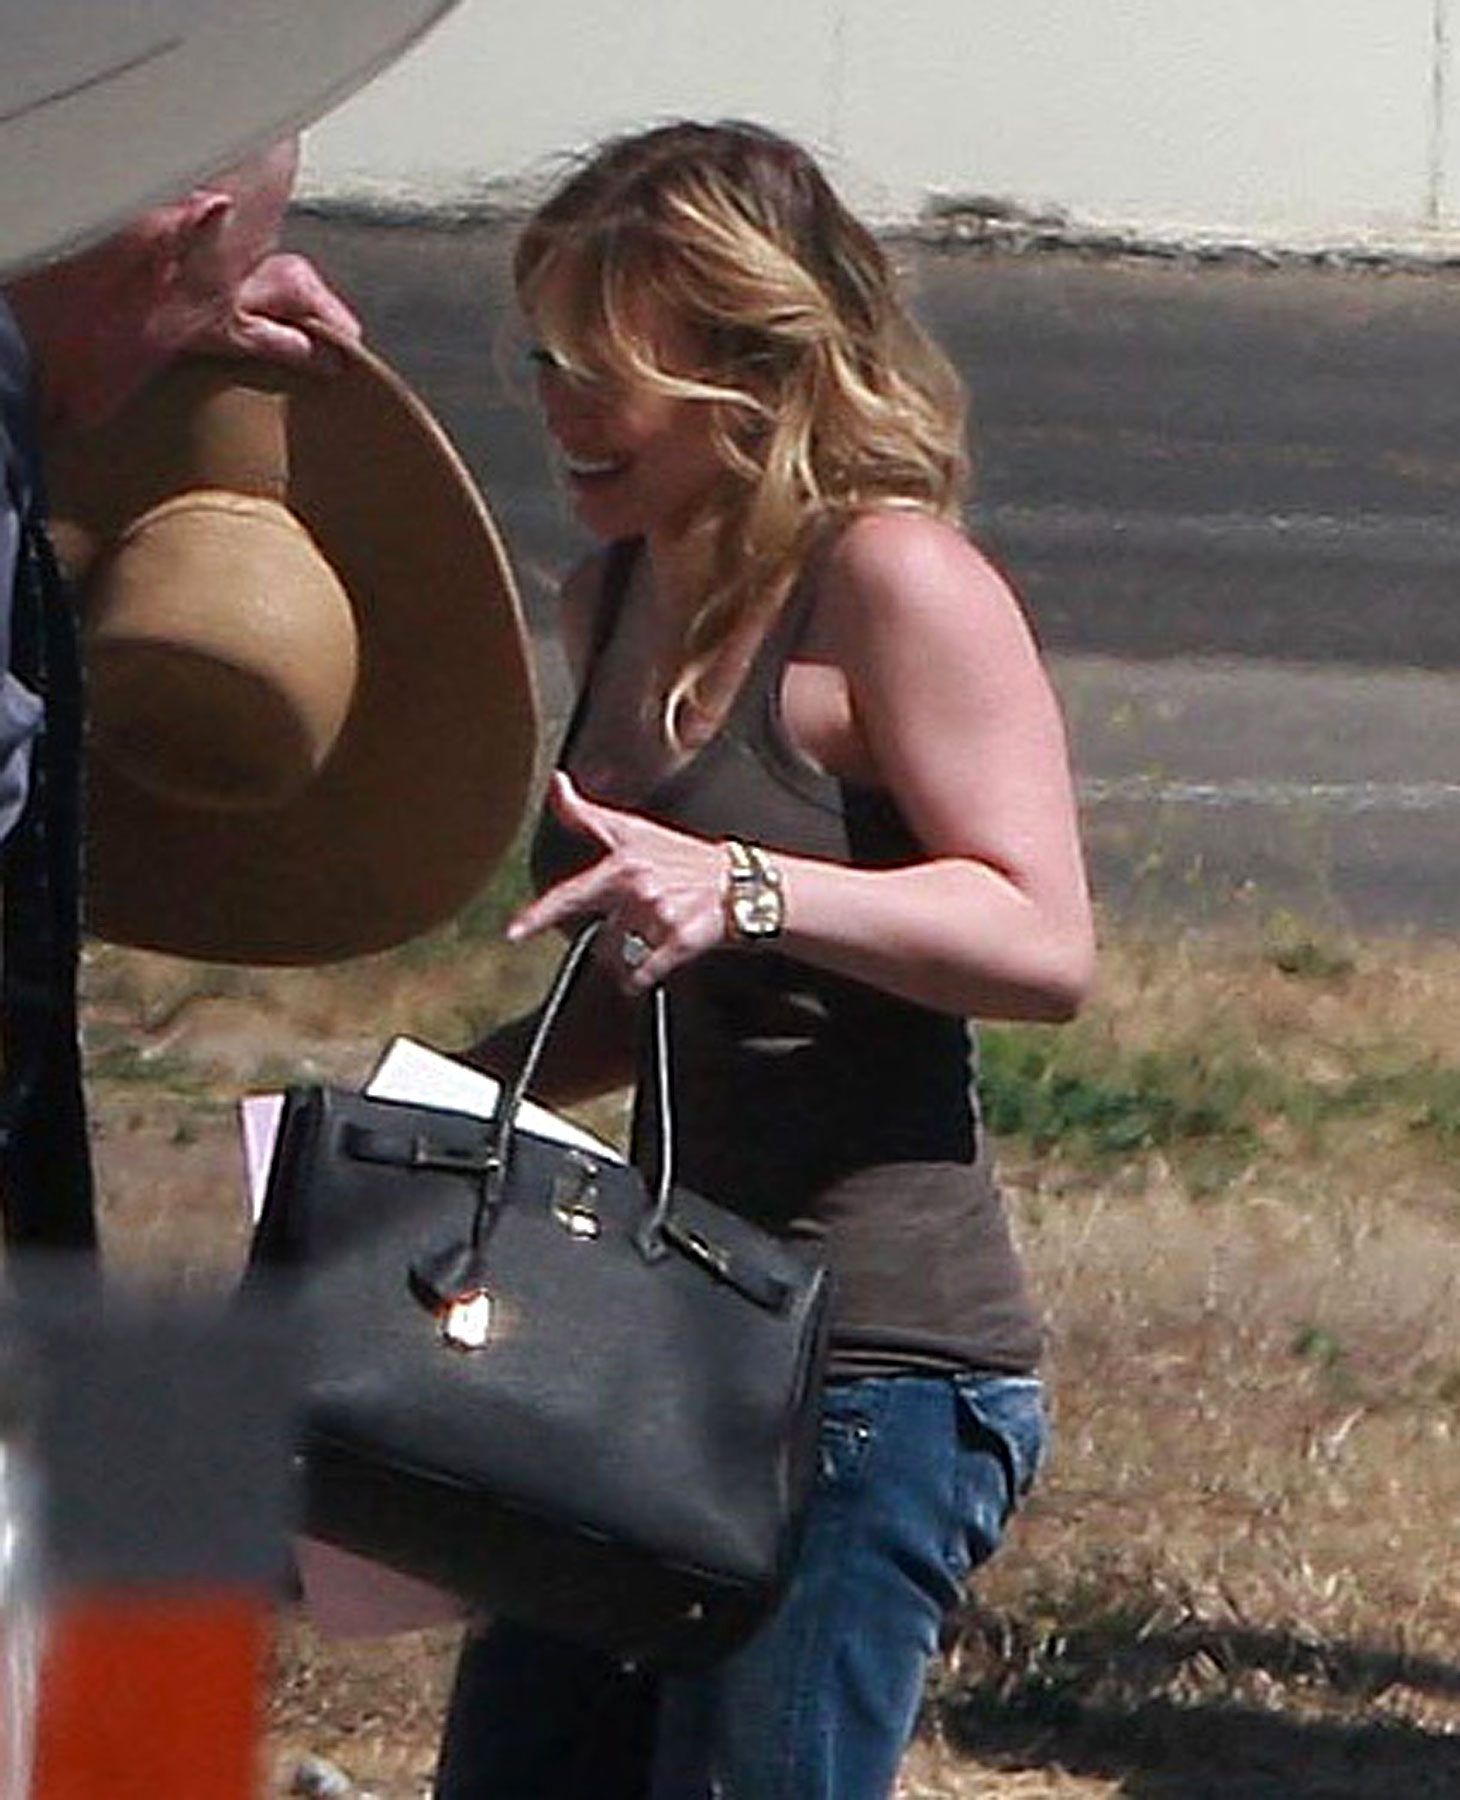 Hilary Duff & Mike Comrie's Post-Wedding Exit (PHOTOS)